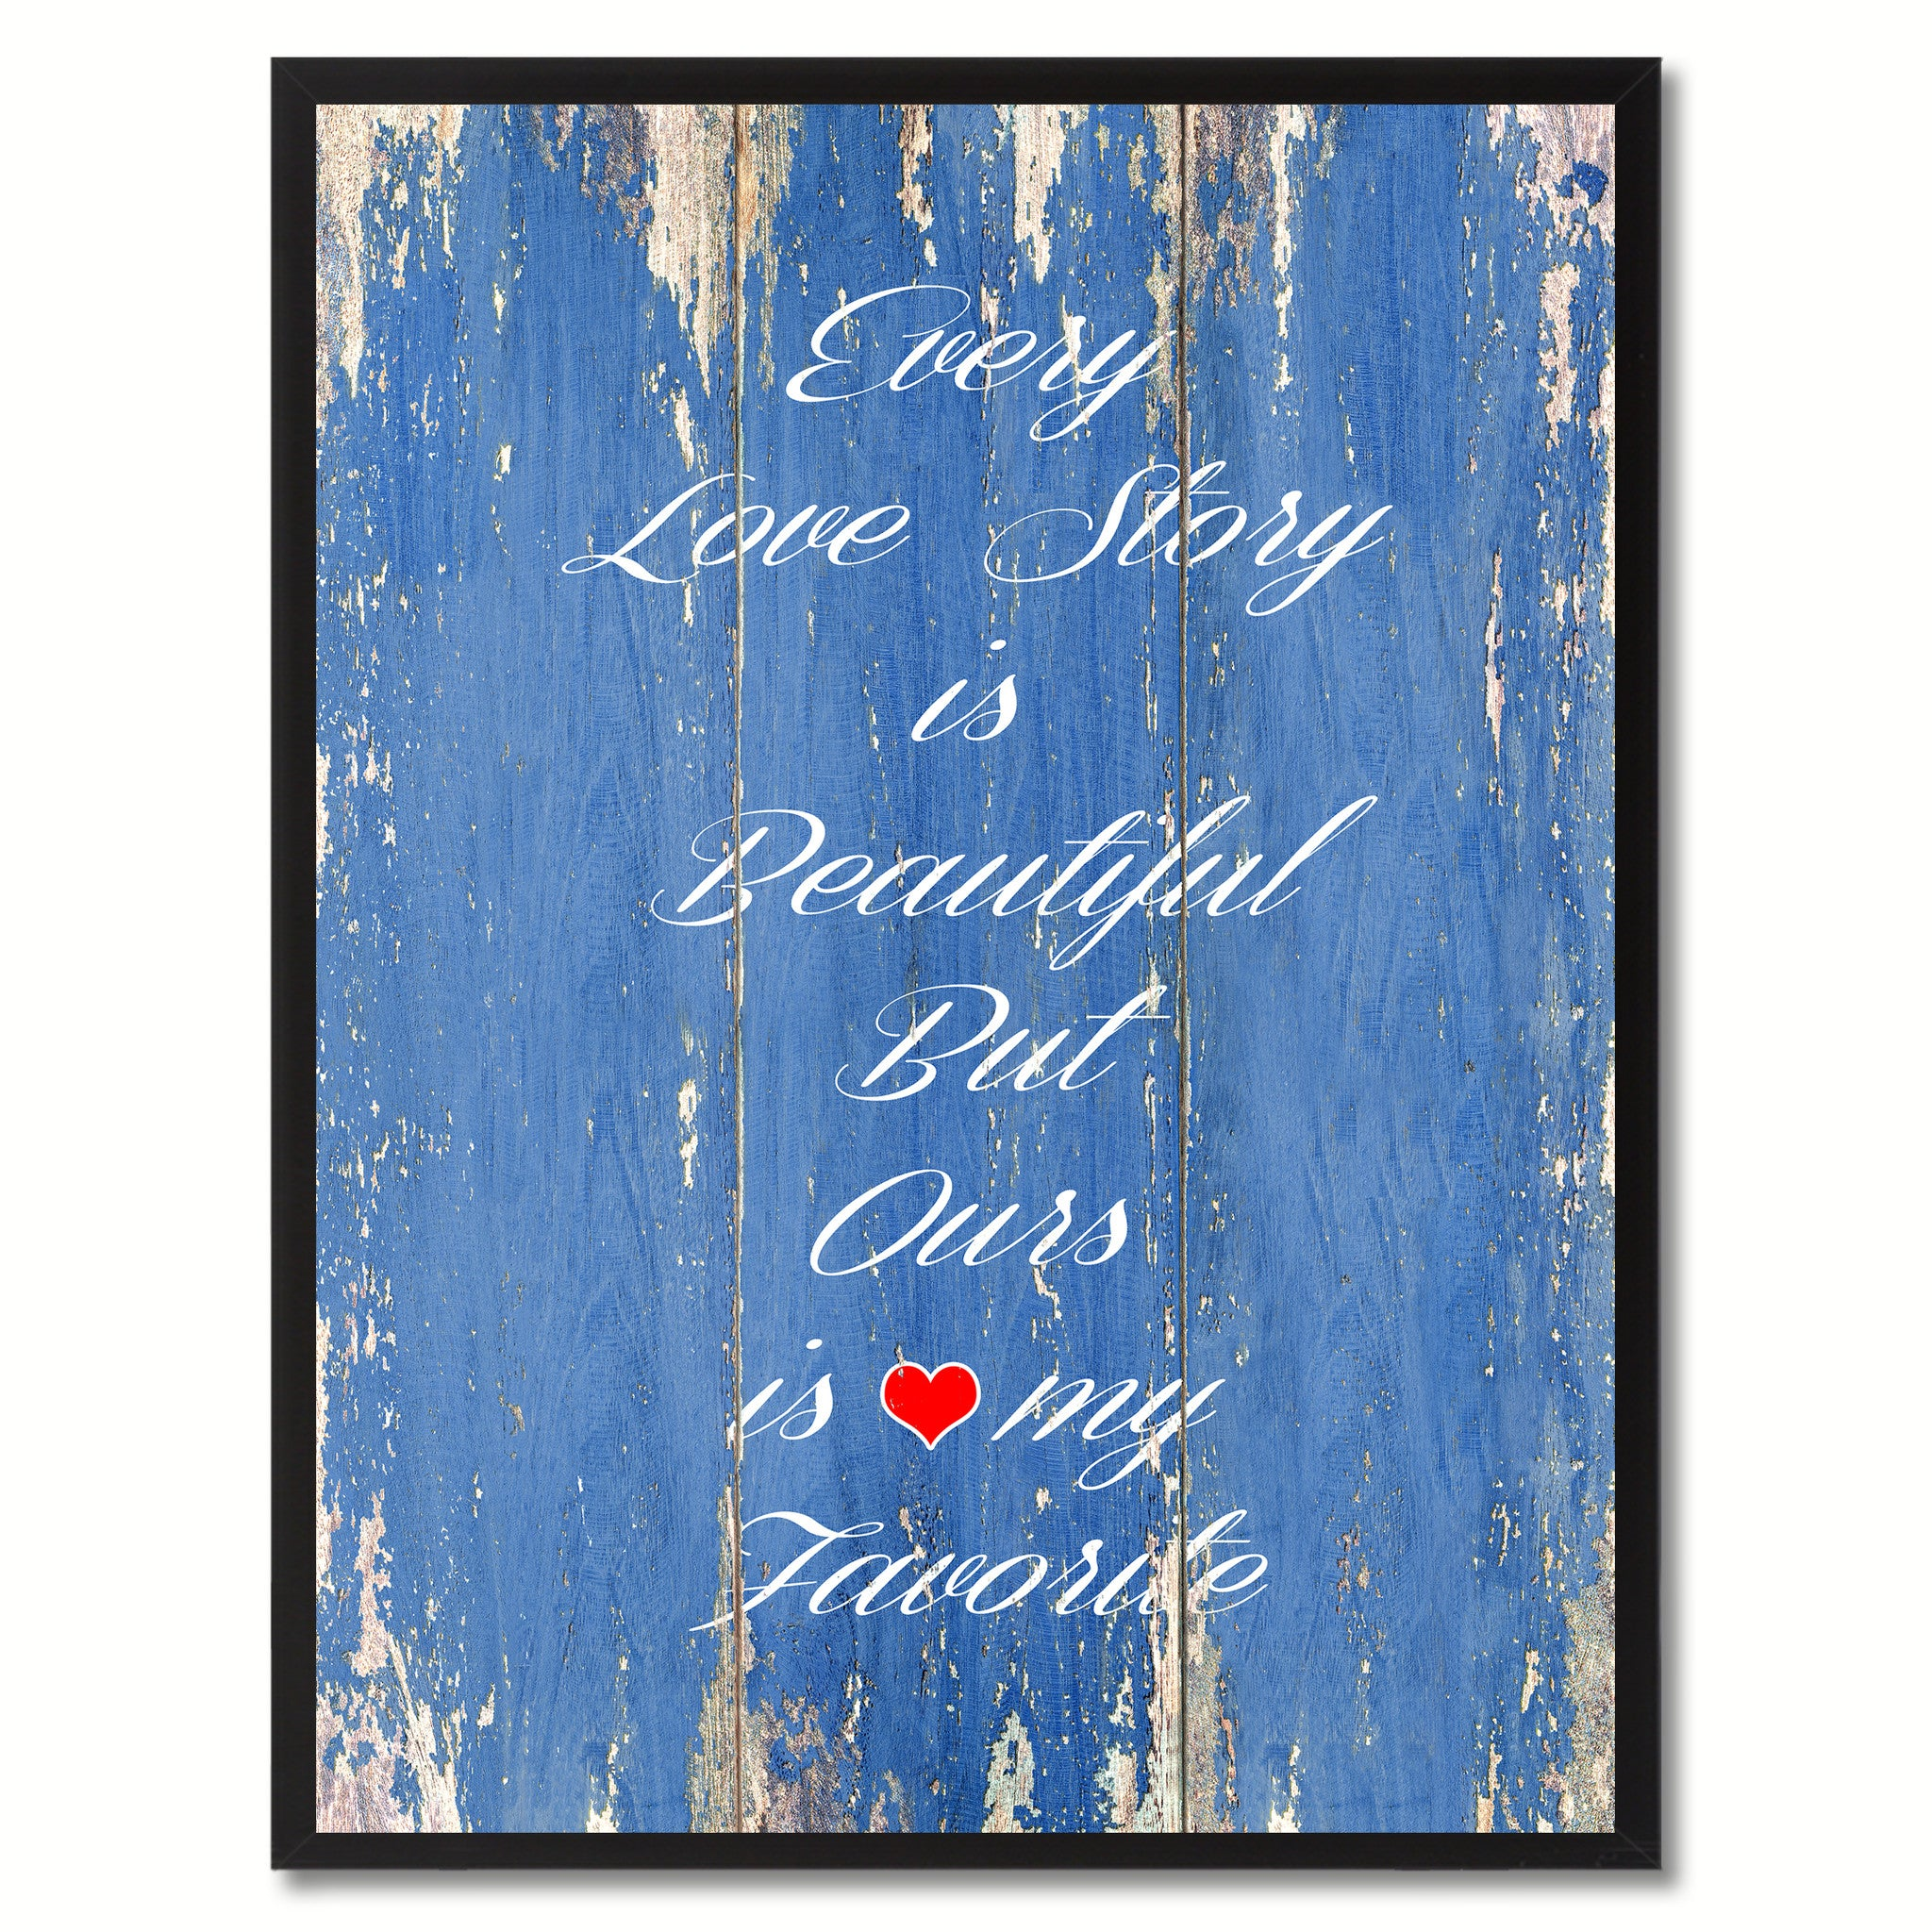 Every Love Story Is Beautiful Saying Canvas Print, Black Picture Frame Home Decor Wall Art Gifts